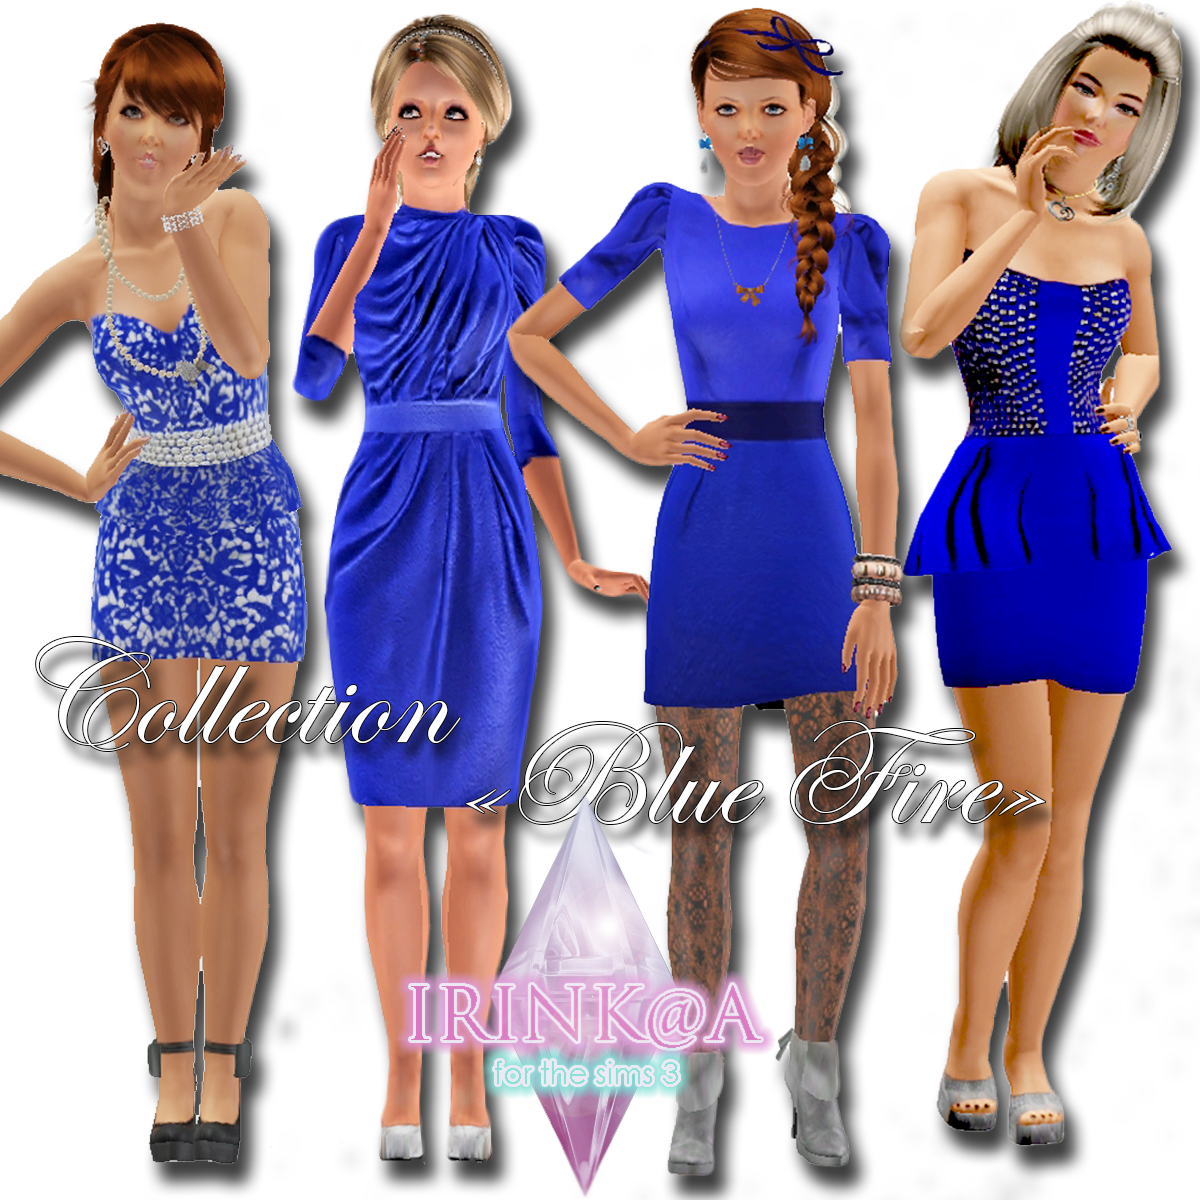 Collection Blue Fire by Irink@a